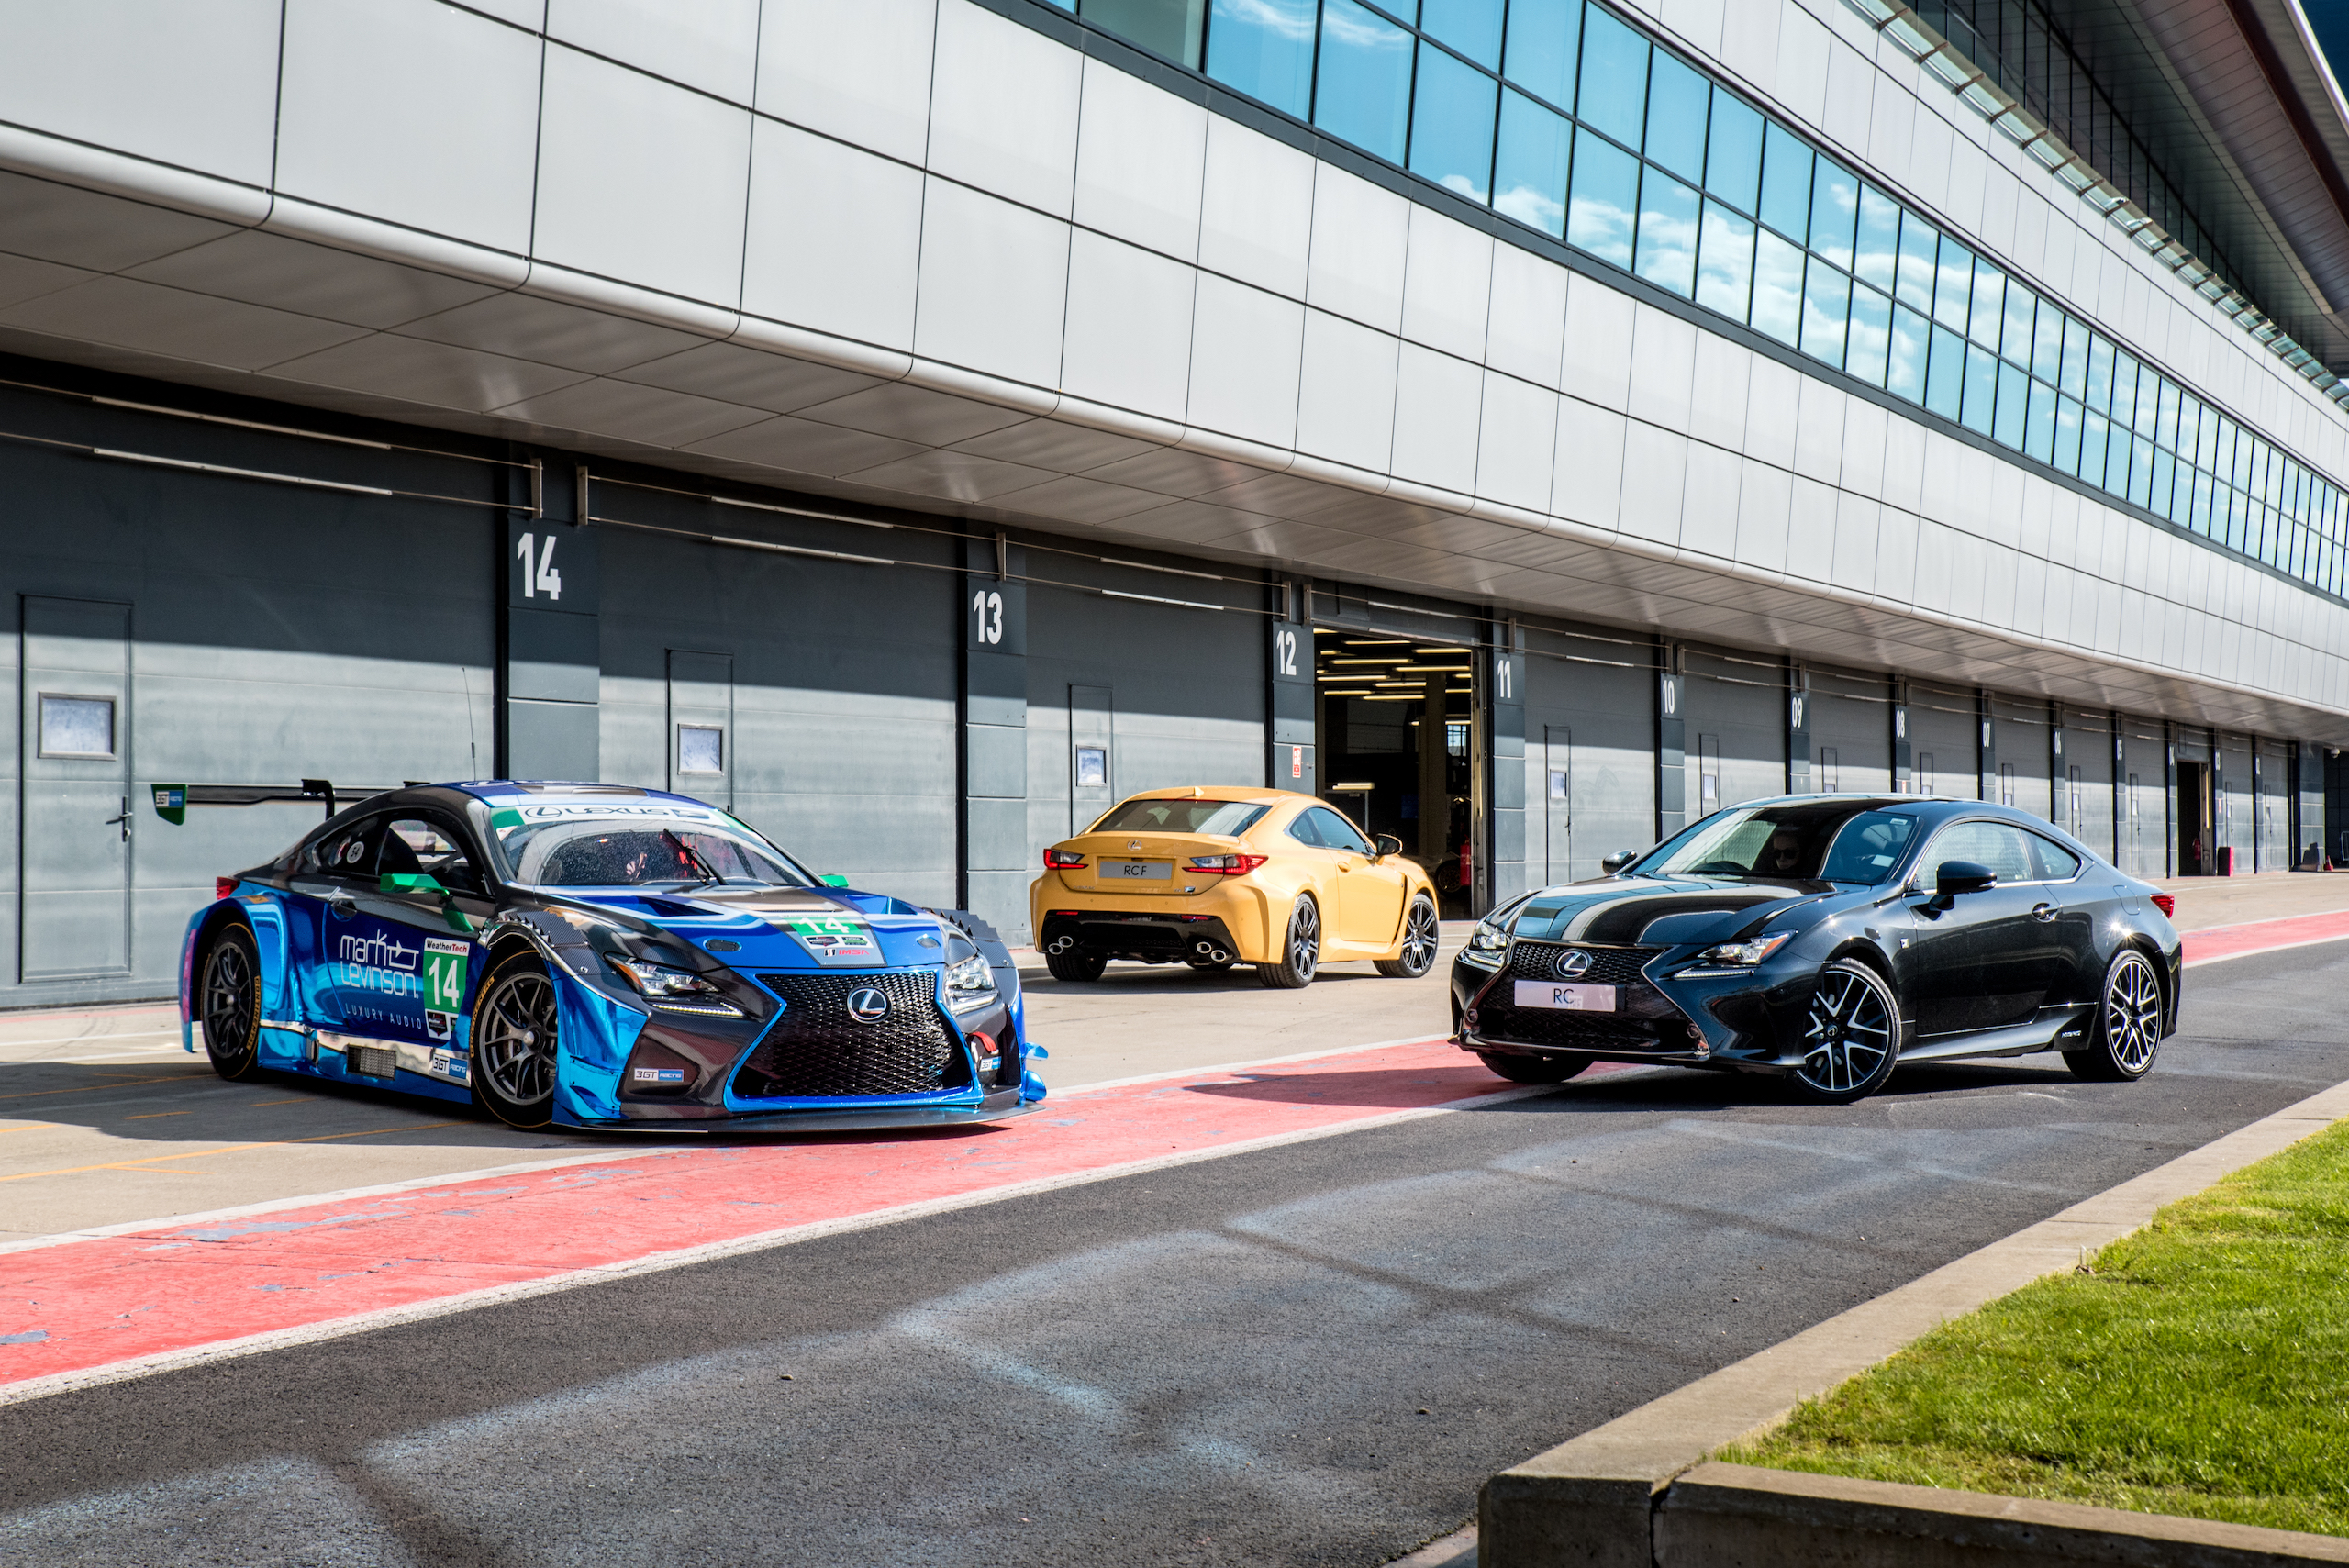 10 Years of Lexus F Celebration at Goodwood Festival of Speed